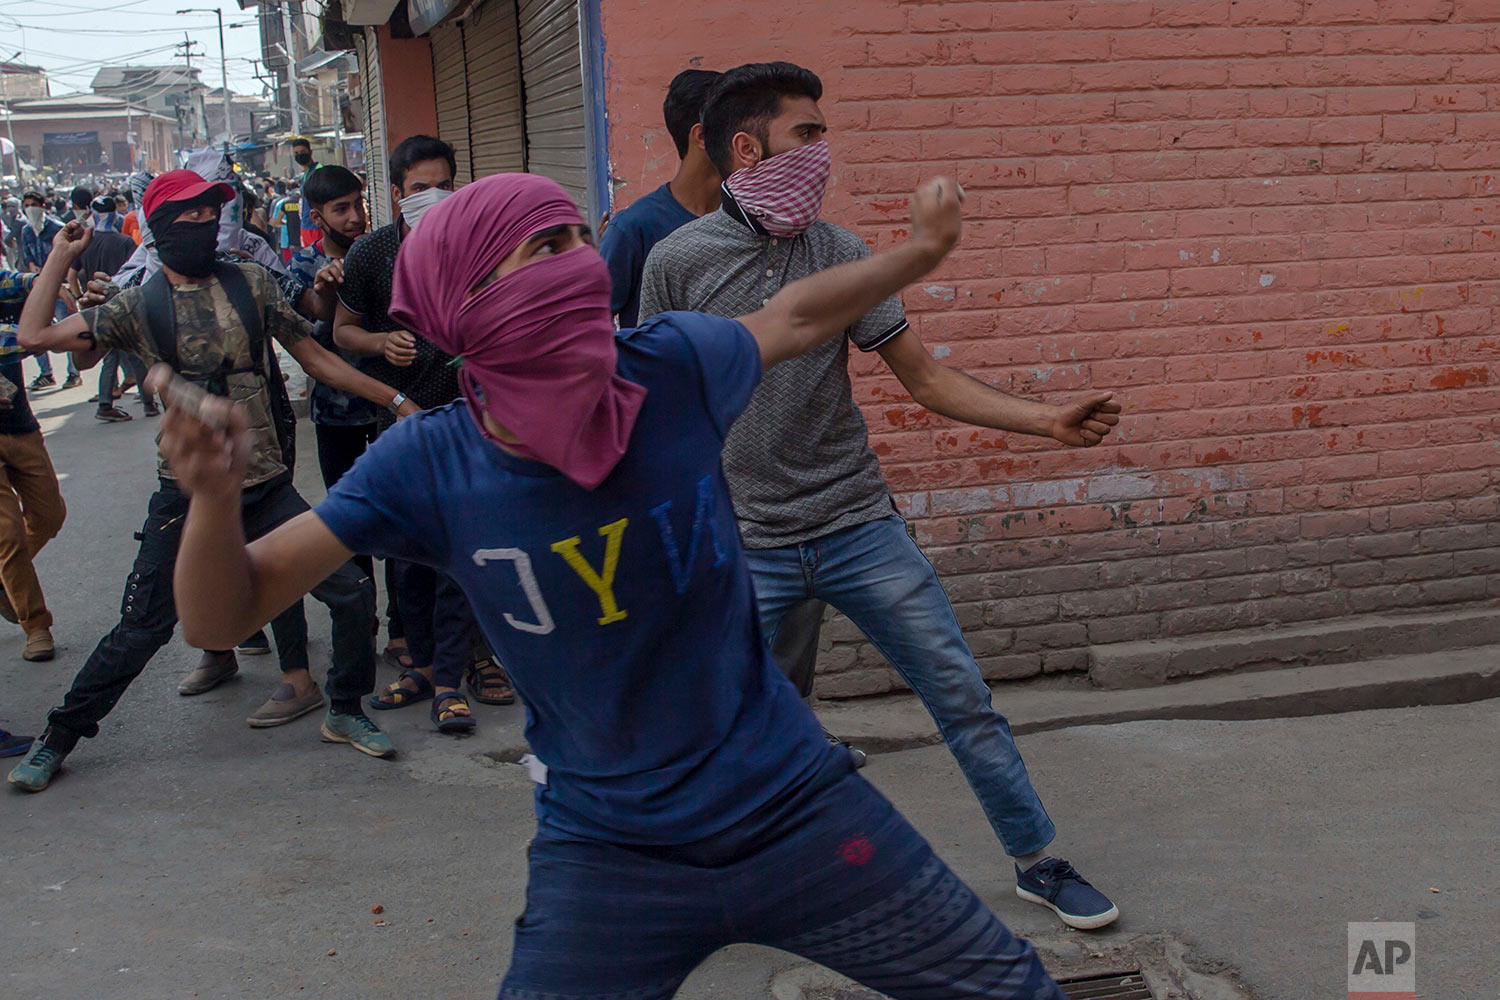 Kashmiri Protesters throw rocks and bricks at policemen in Srinagar, Indian controlled Kashmir, Friday, June 1, 2018. (AP Photo/Dar Yasin)